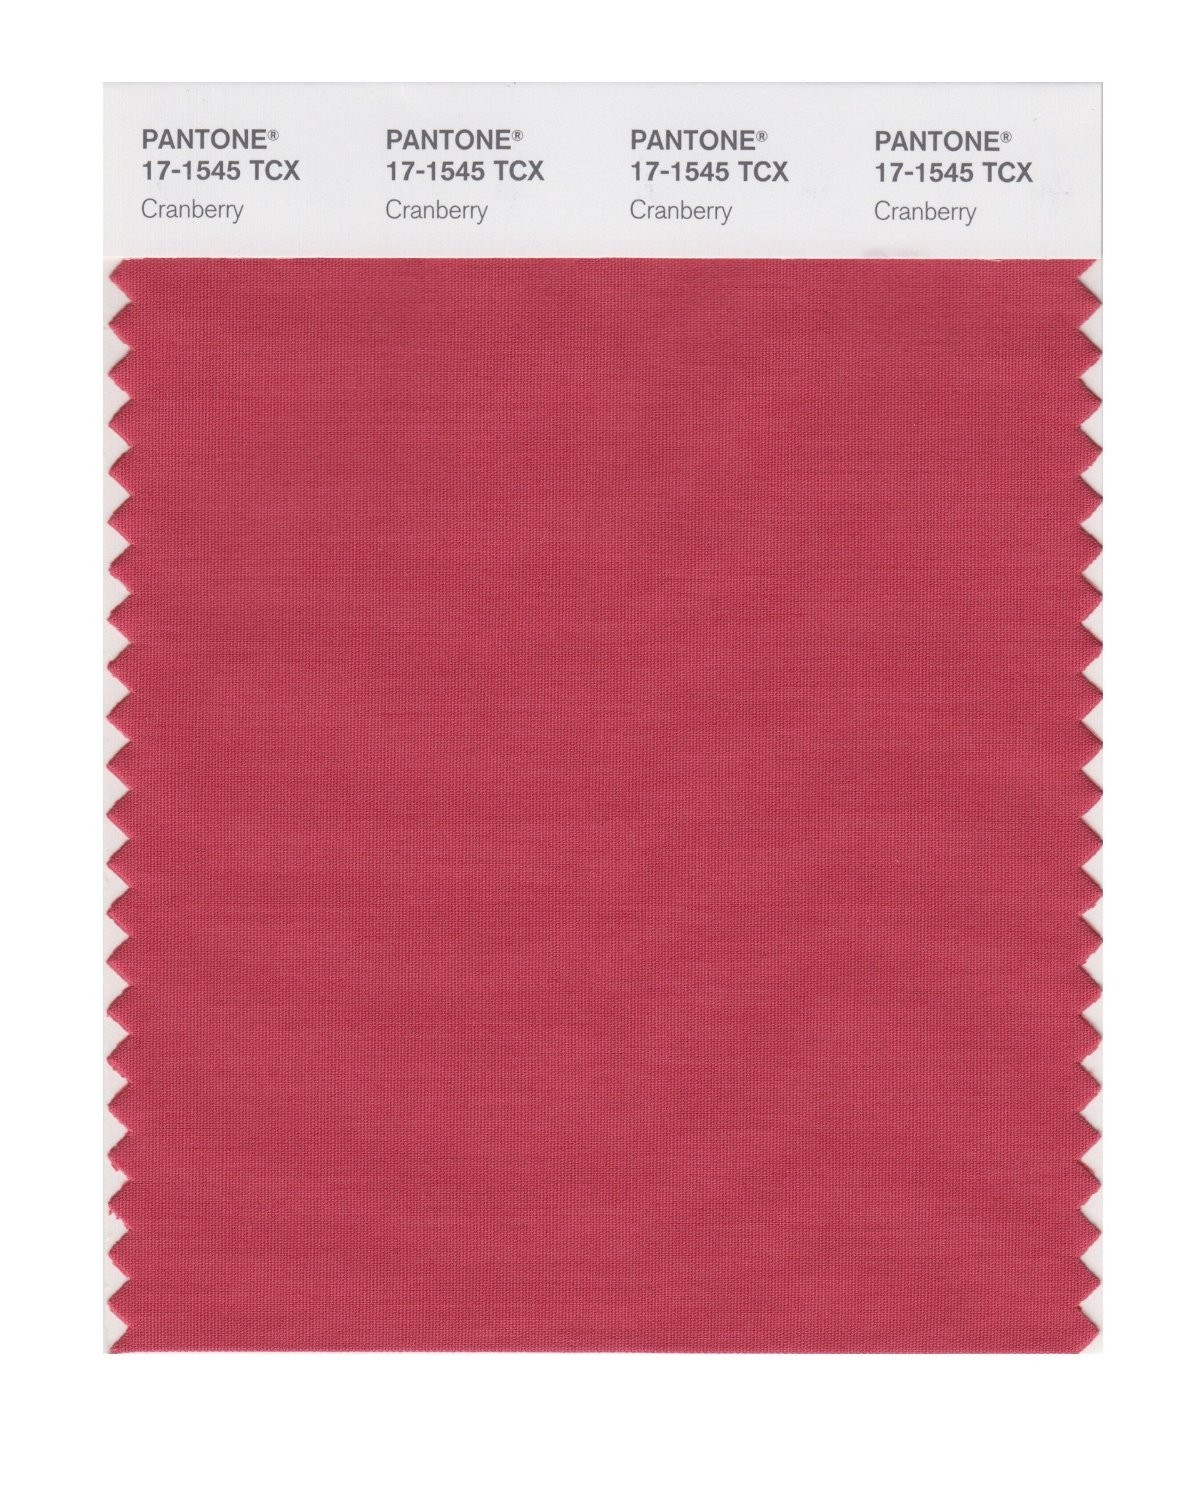 Pantone 17-1545 TCX Swatch Card Cranberry